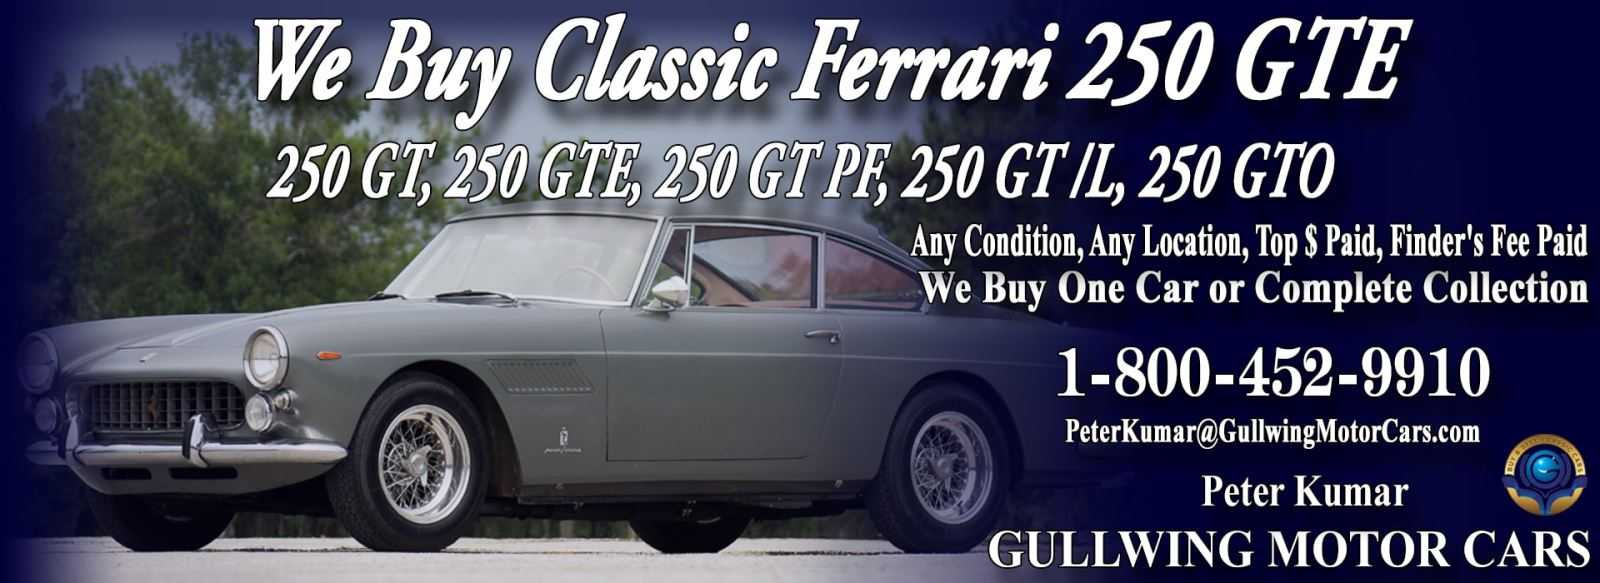 Classic Ferrari 250 GTE for sale, we buy vintage Ferrari 250GTE. Call Peter Kumar. Gullwing Motor